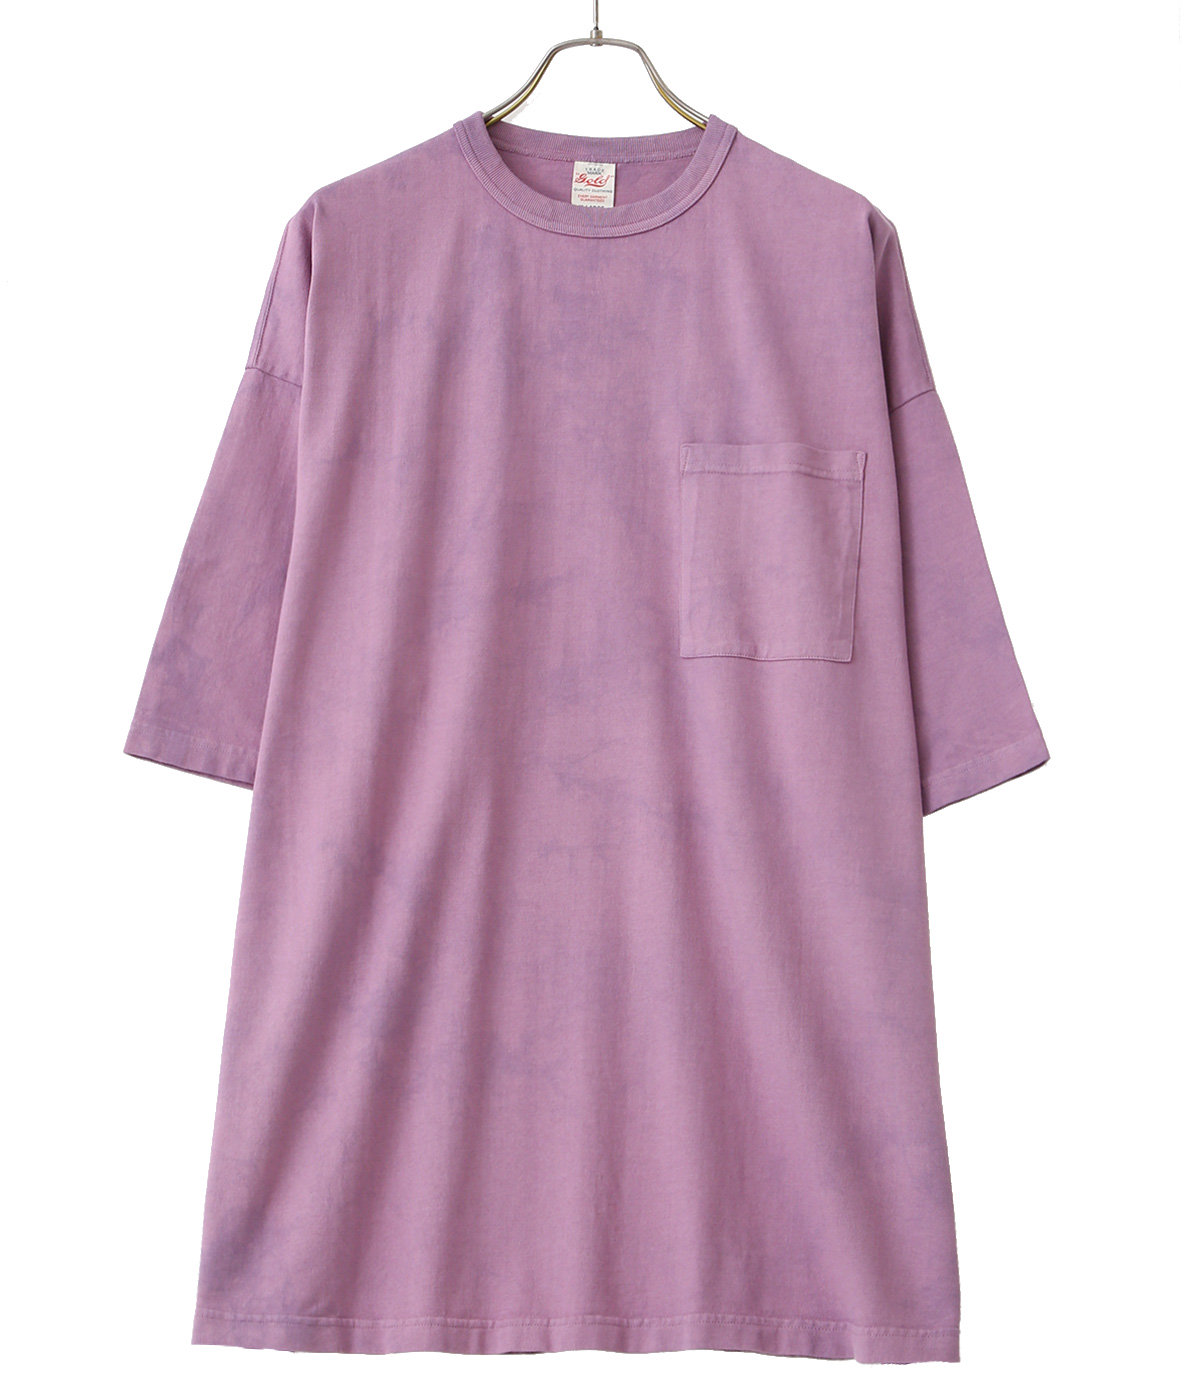 【予約】SUVIN COTTON OVER SIZE TEE TIE-DYED